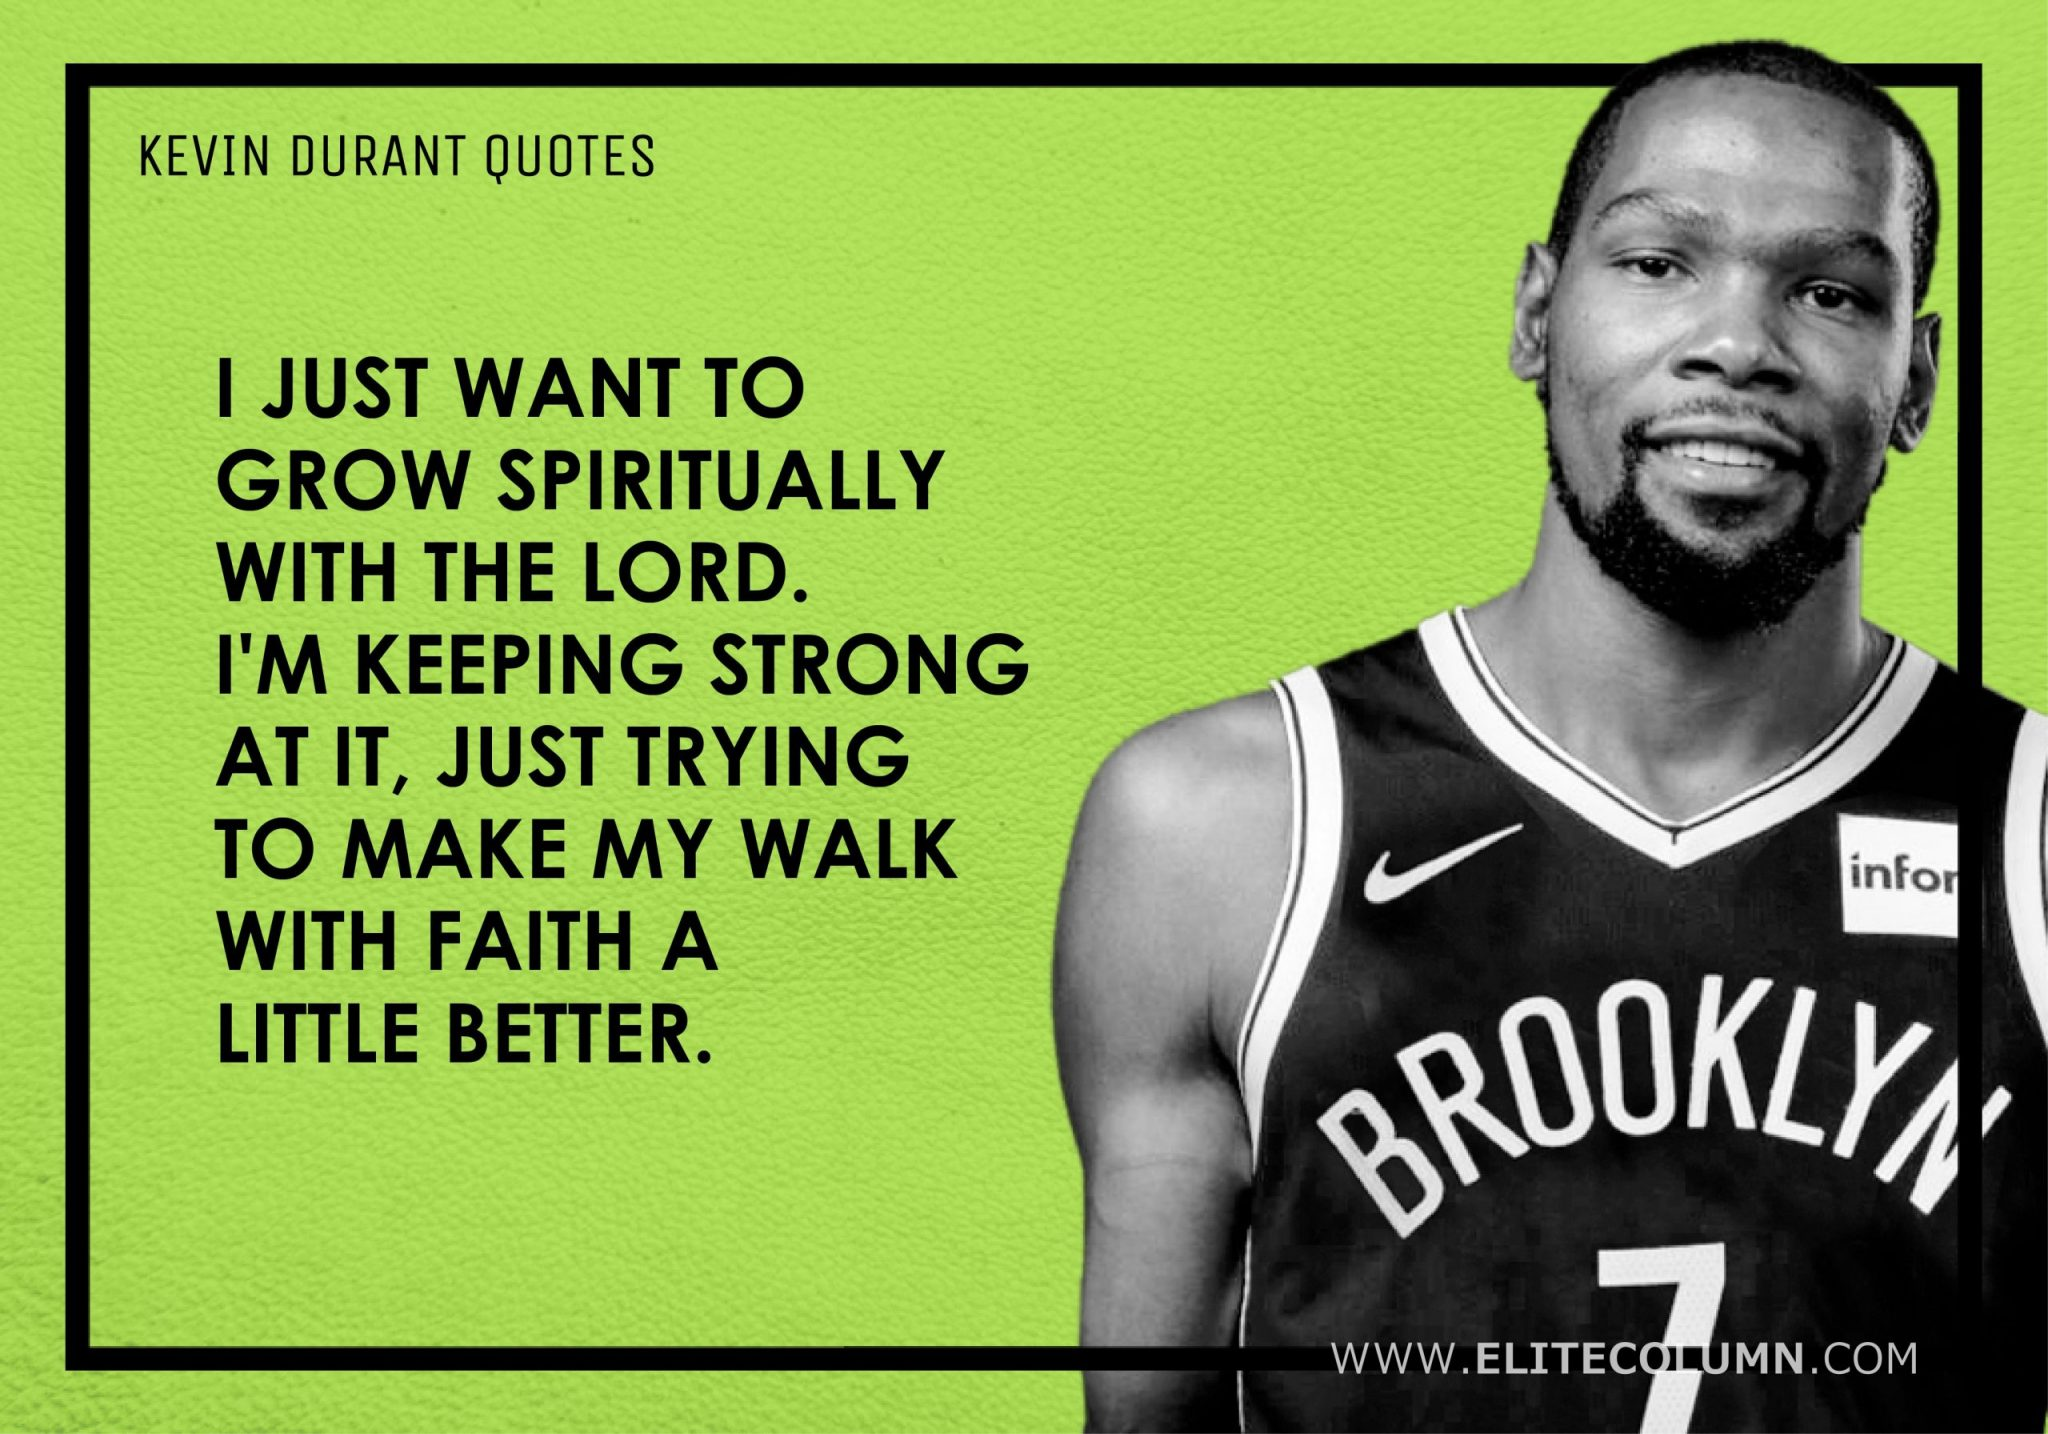 Kevin Durant Quotes (15)